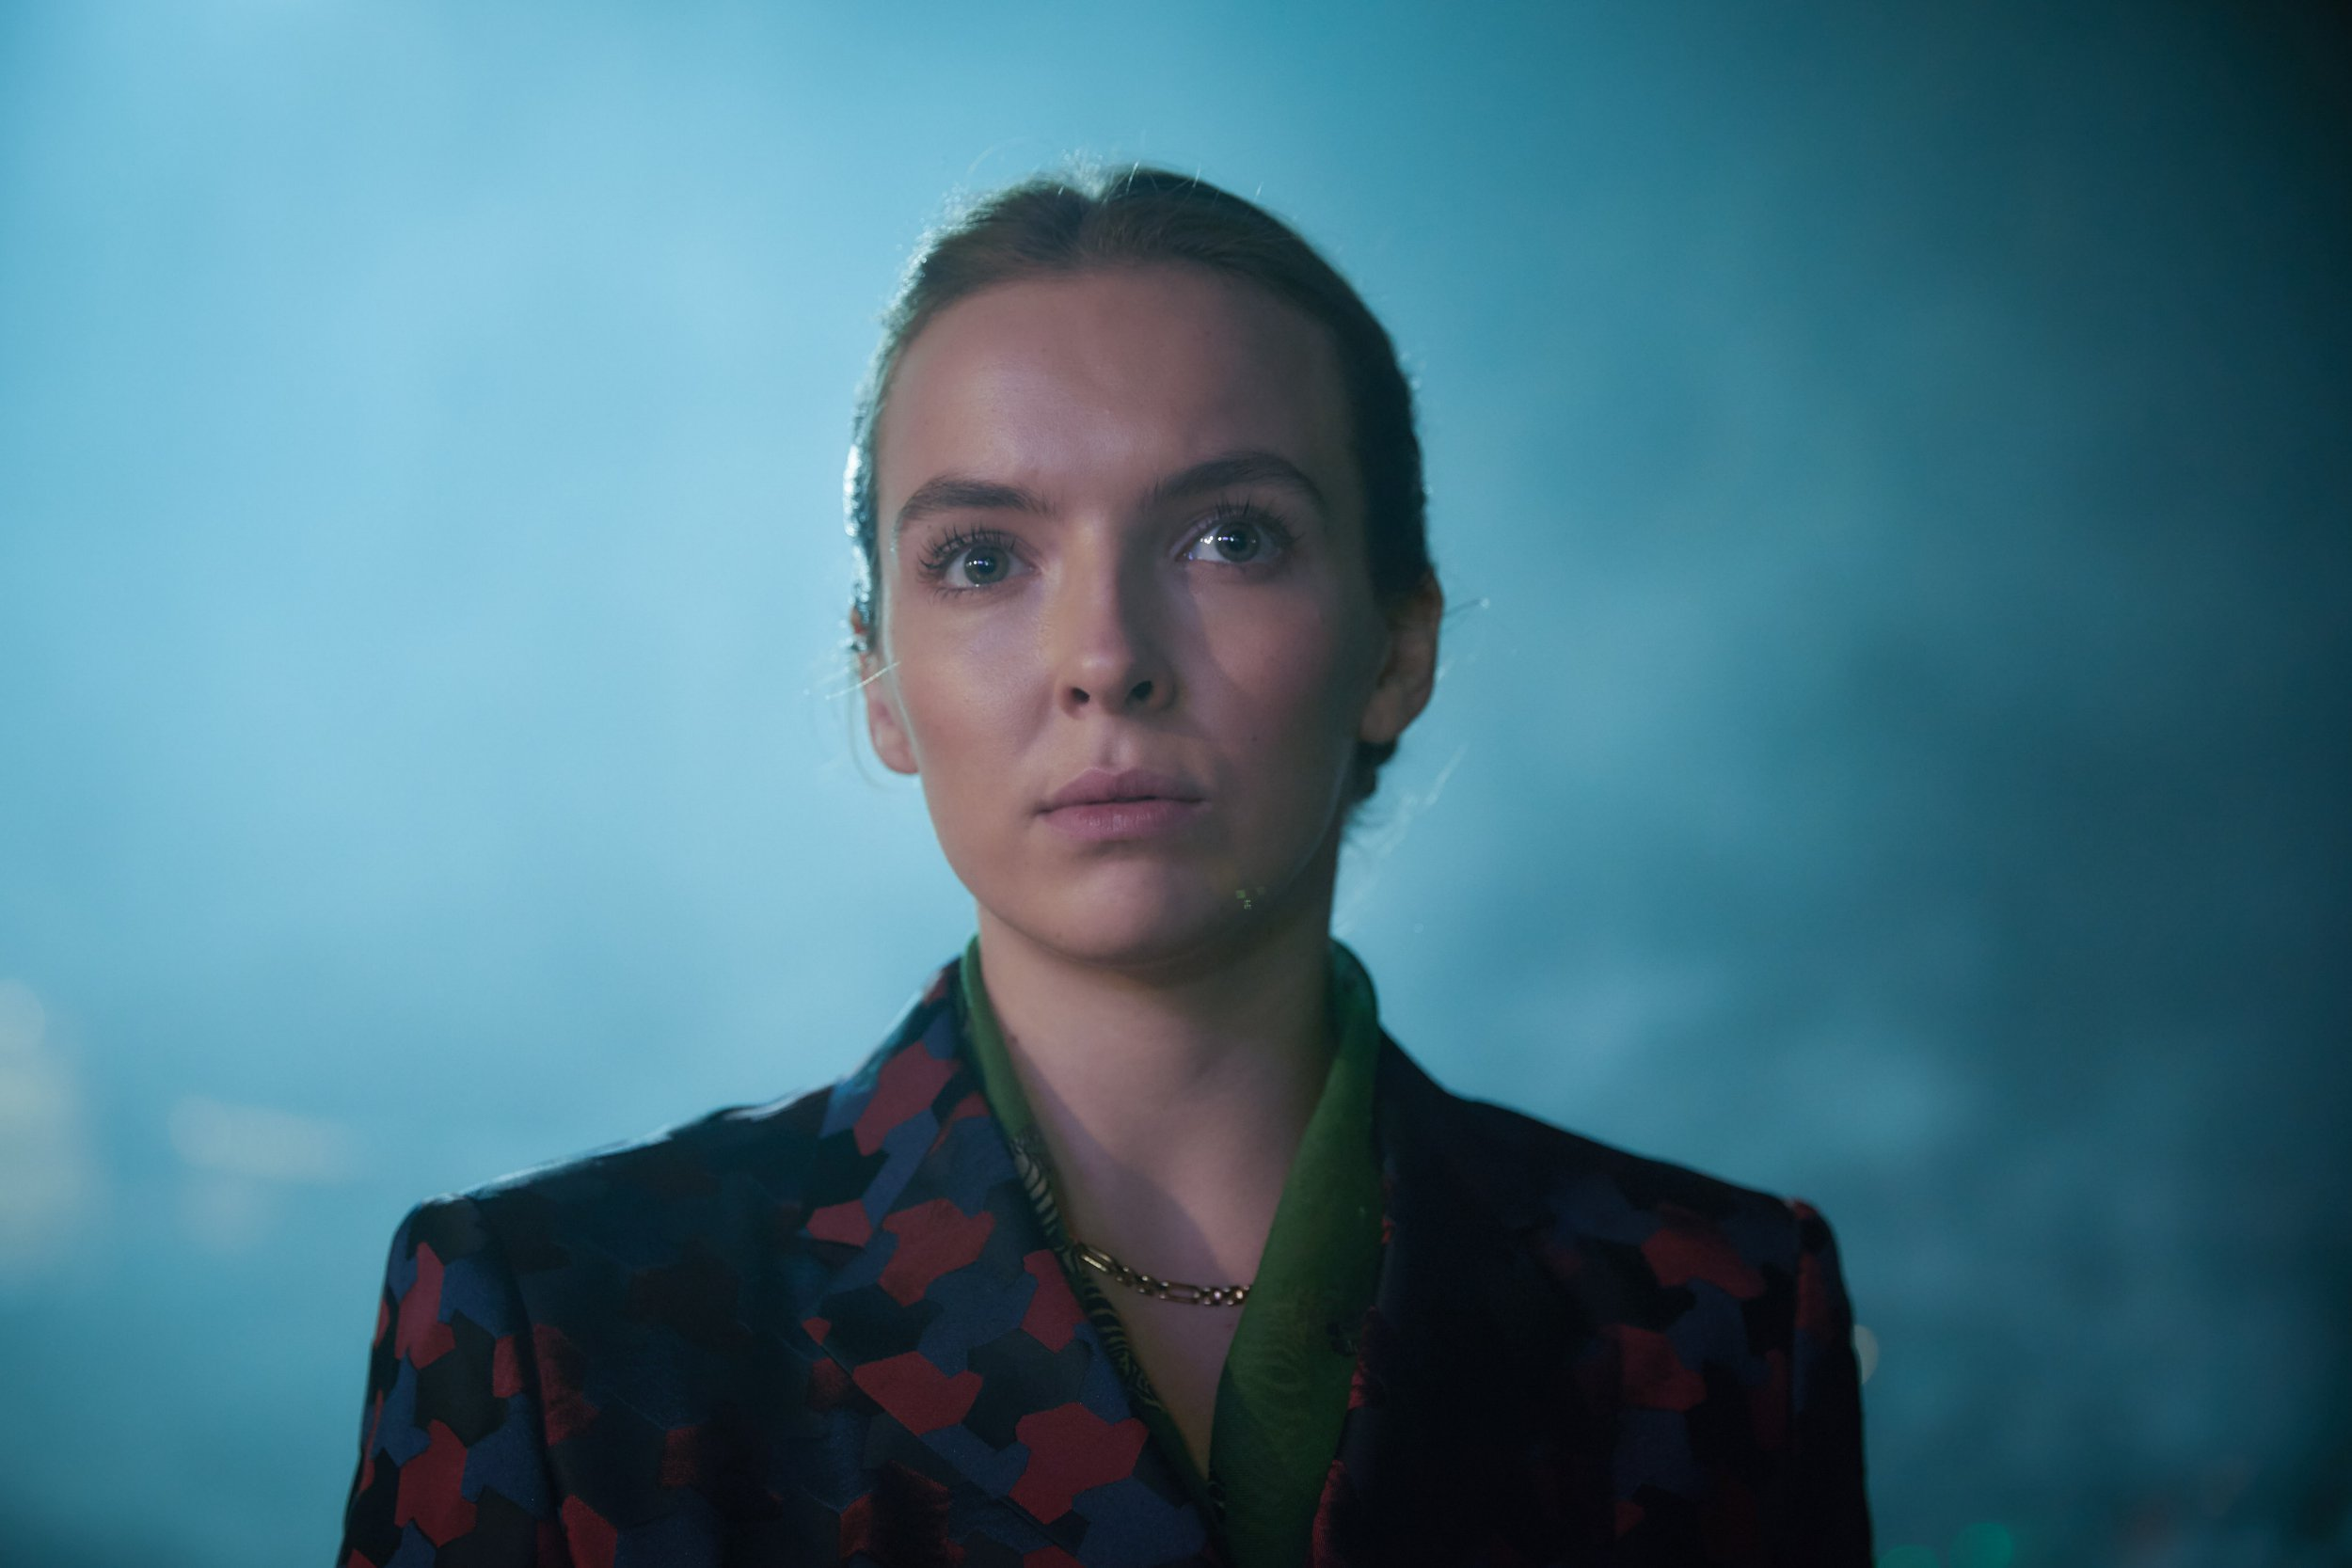 WARNING: Embargoed for publication until 00:00:01 on 25/09/2018 - Programme Name: Killing Eve - TX: n/a - Episode: n/a (No. Ep 3) - Picture Shows: *STRICTLY NOT FOR PUBLICATION UNTIL 00:01HRS, TUESDAY 25TH SEPTEMBER, 2018* Villanelle (JODIE COMER) - (C) Sid Gentle Films - Photographer: Robert Viglasky